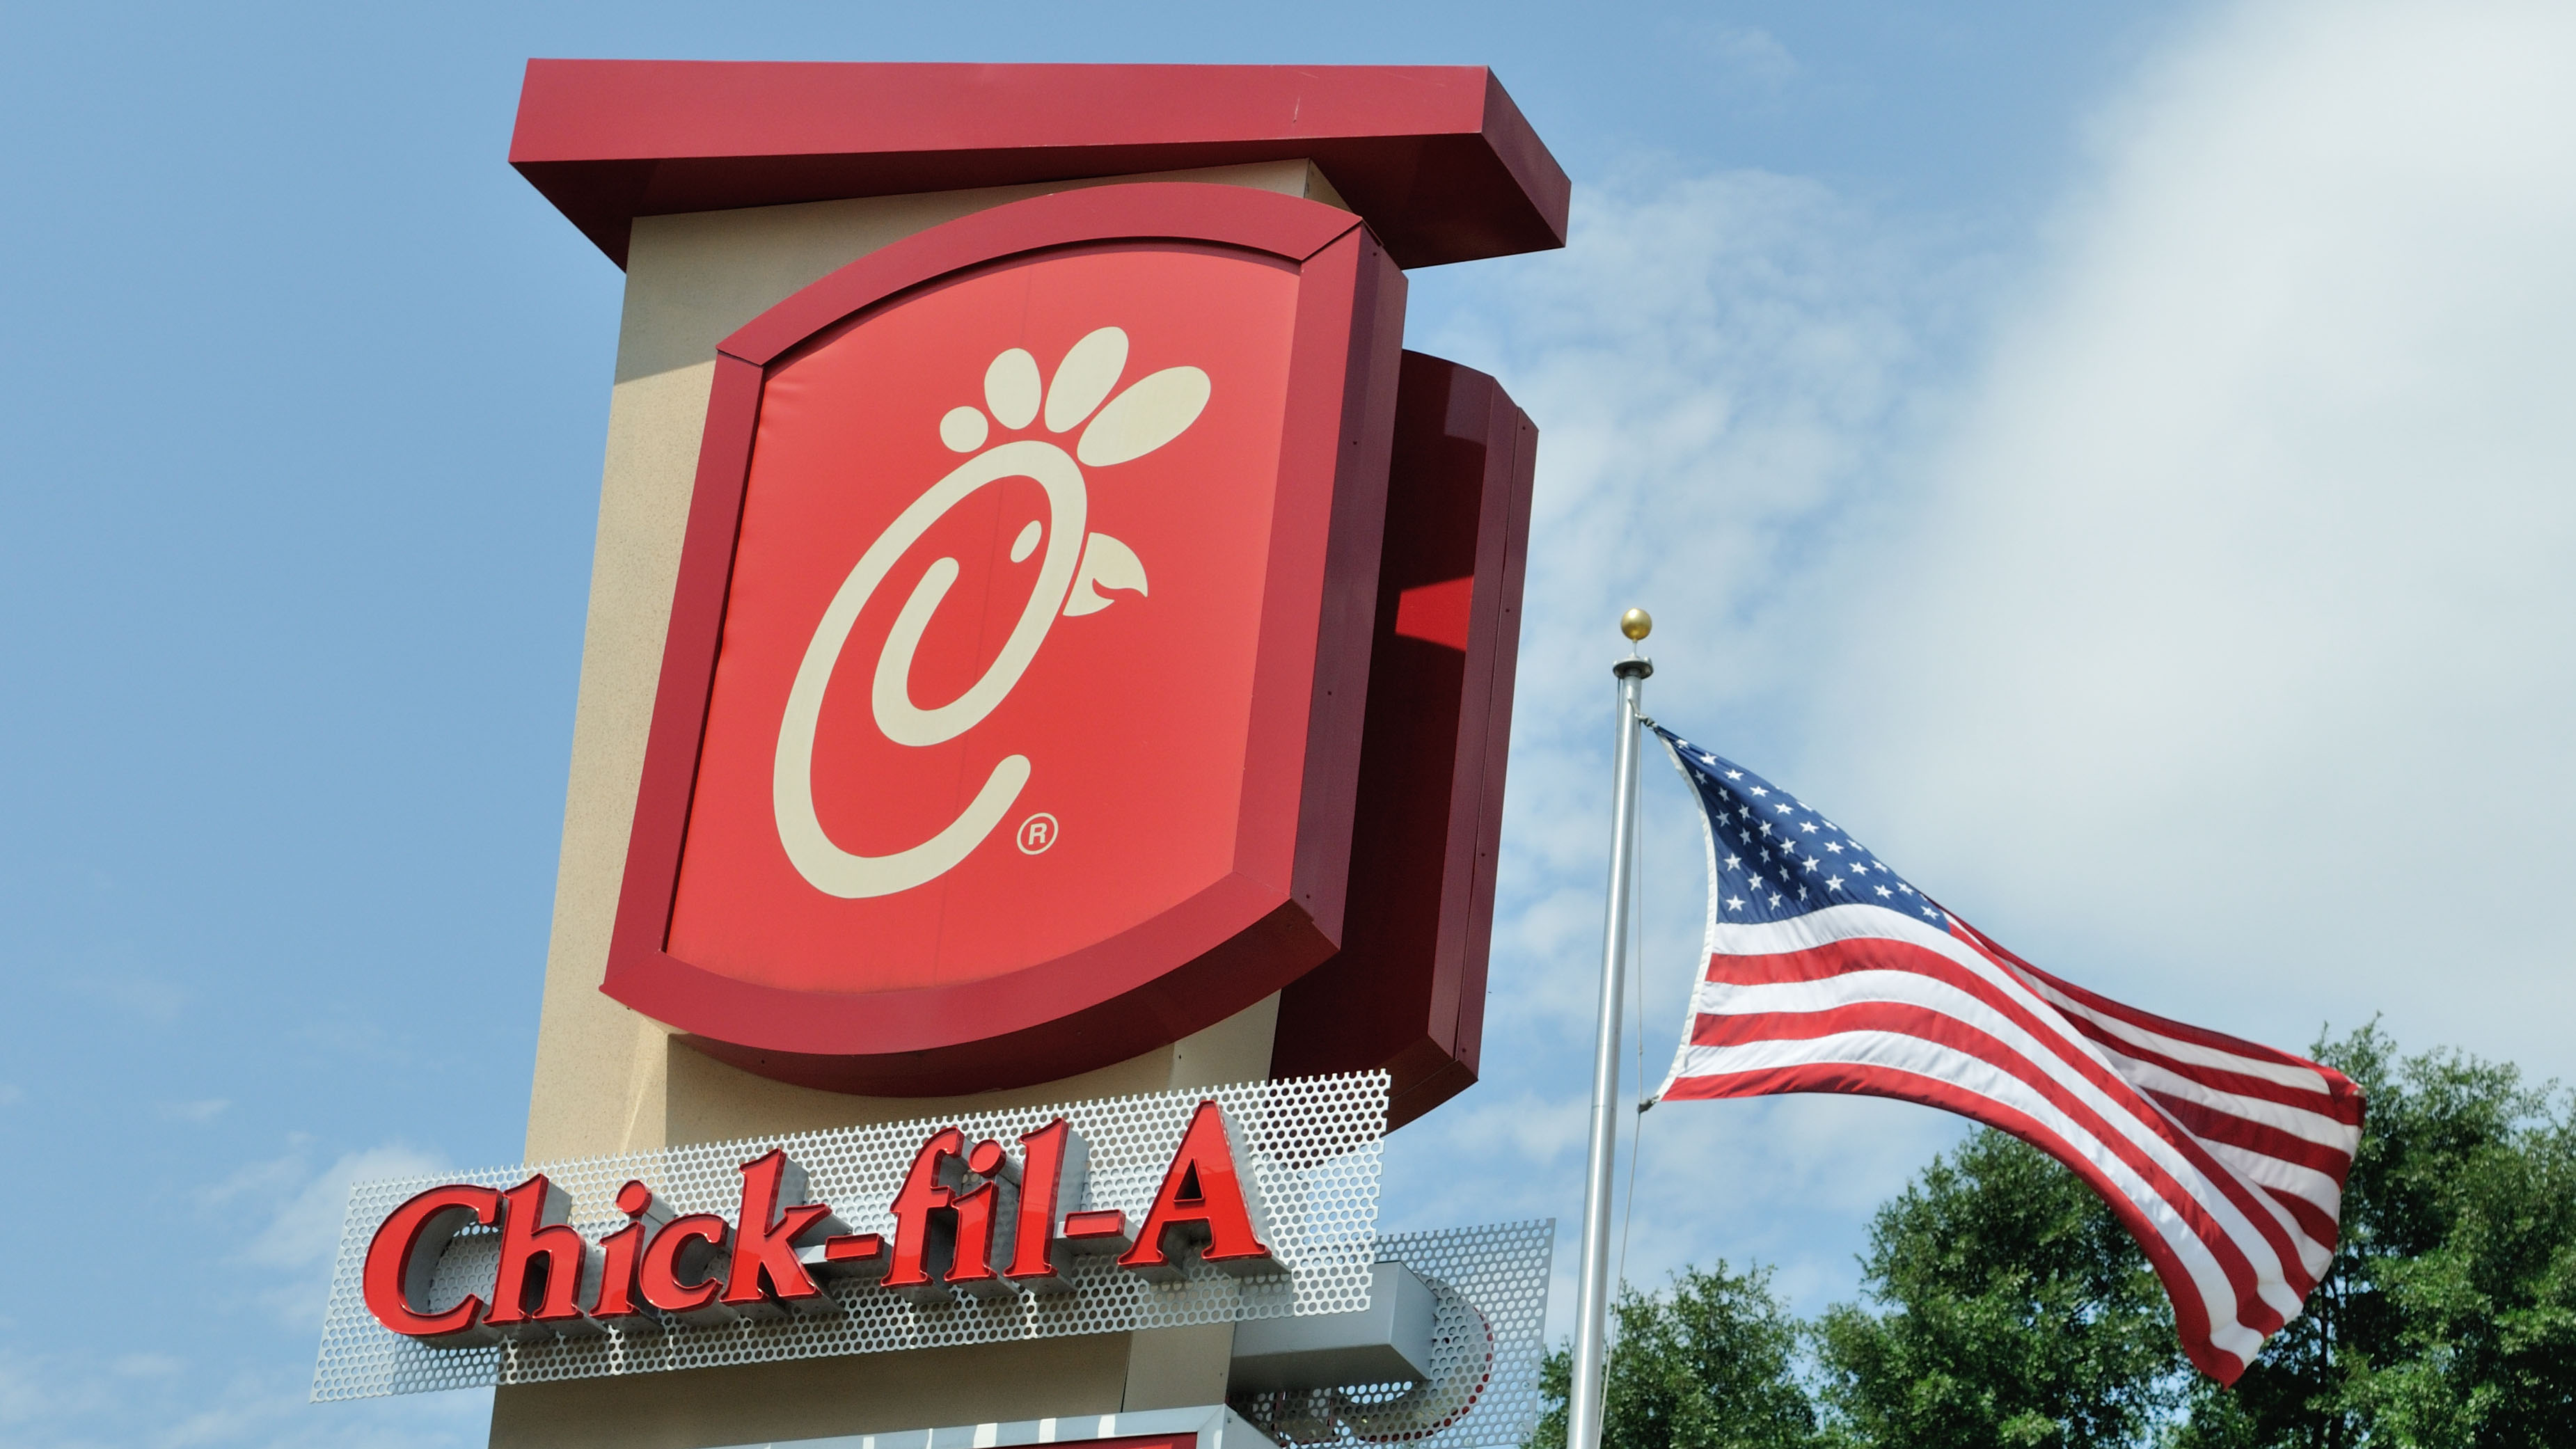 Chick-fil-A employee turns in $900 found in store: 'We are so proud to share this story'